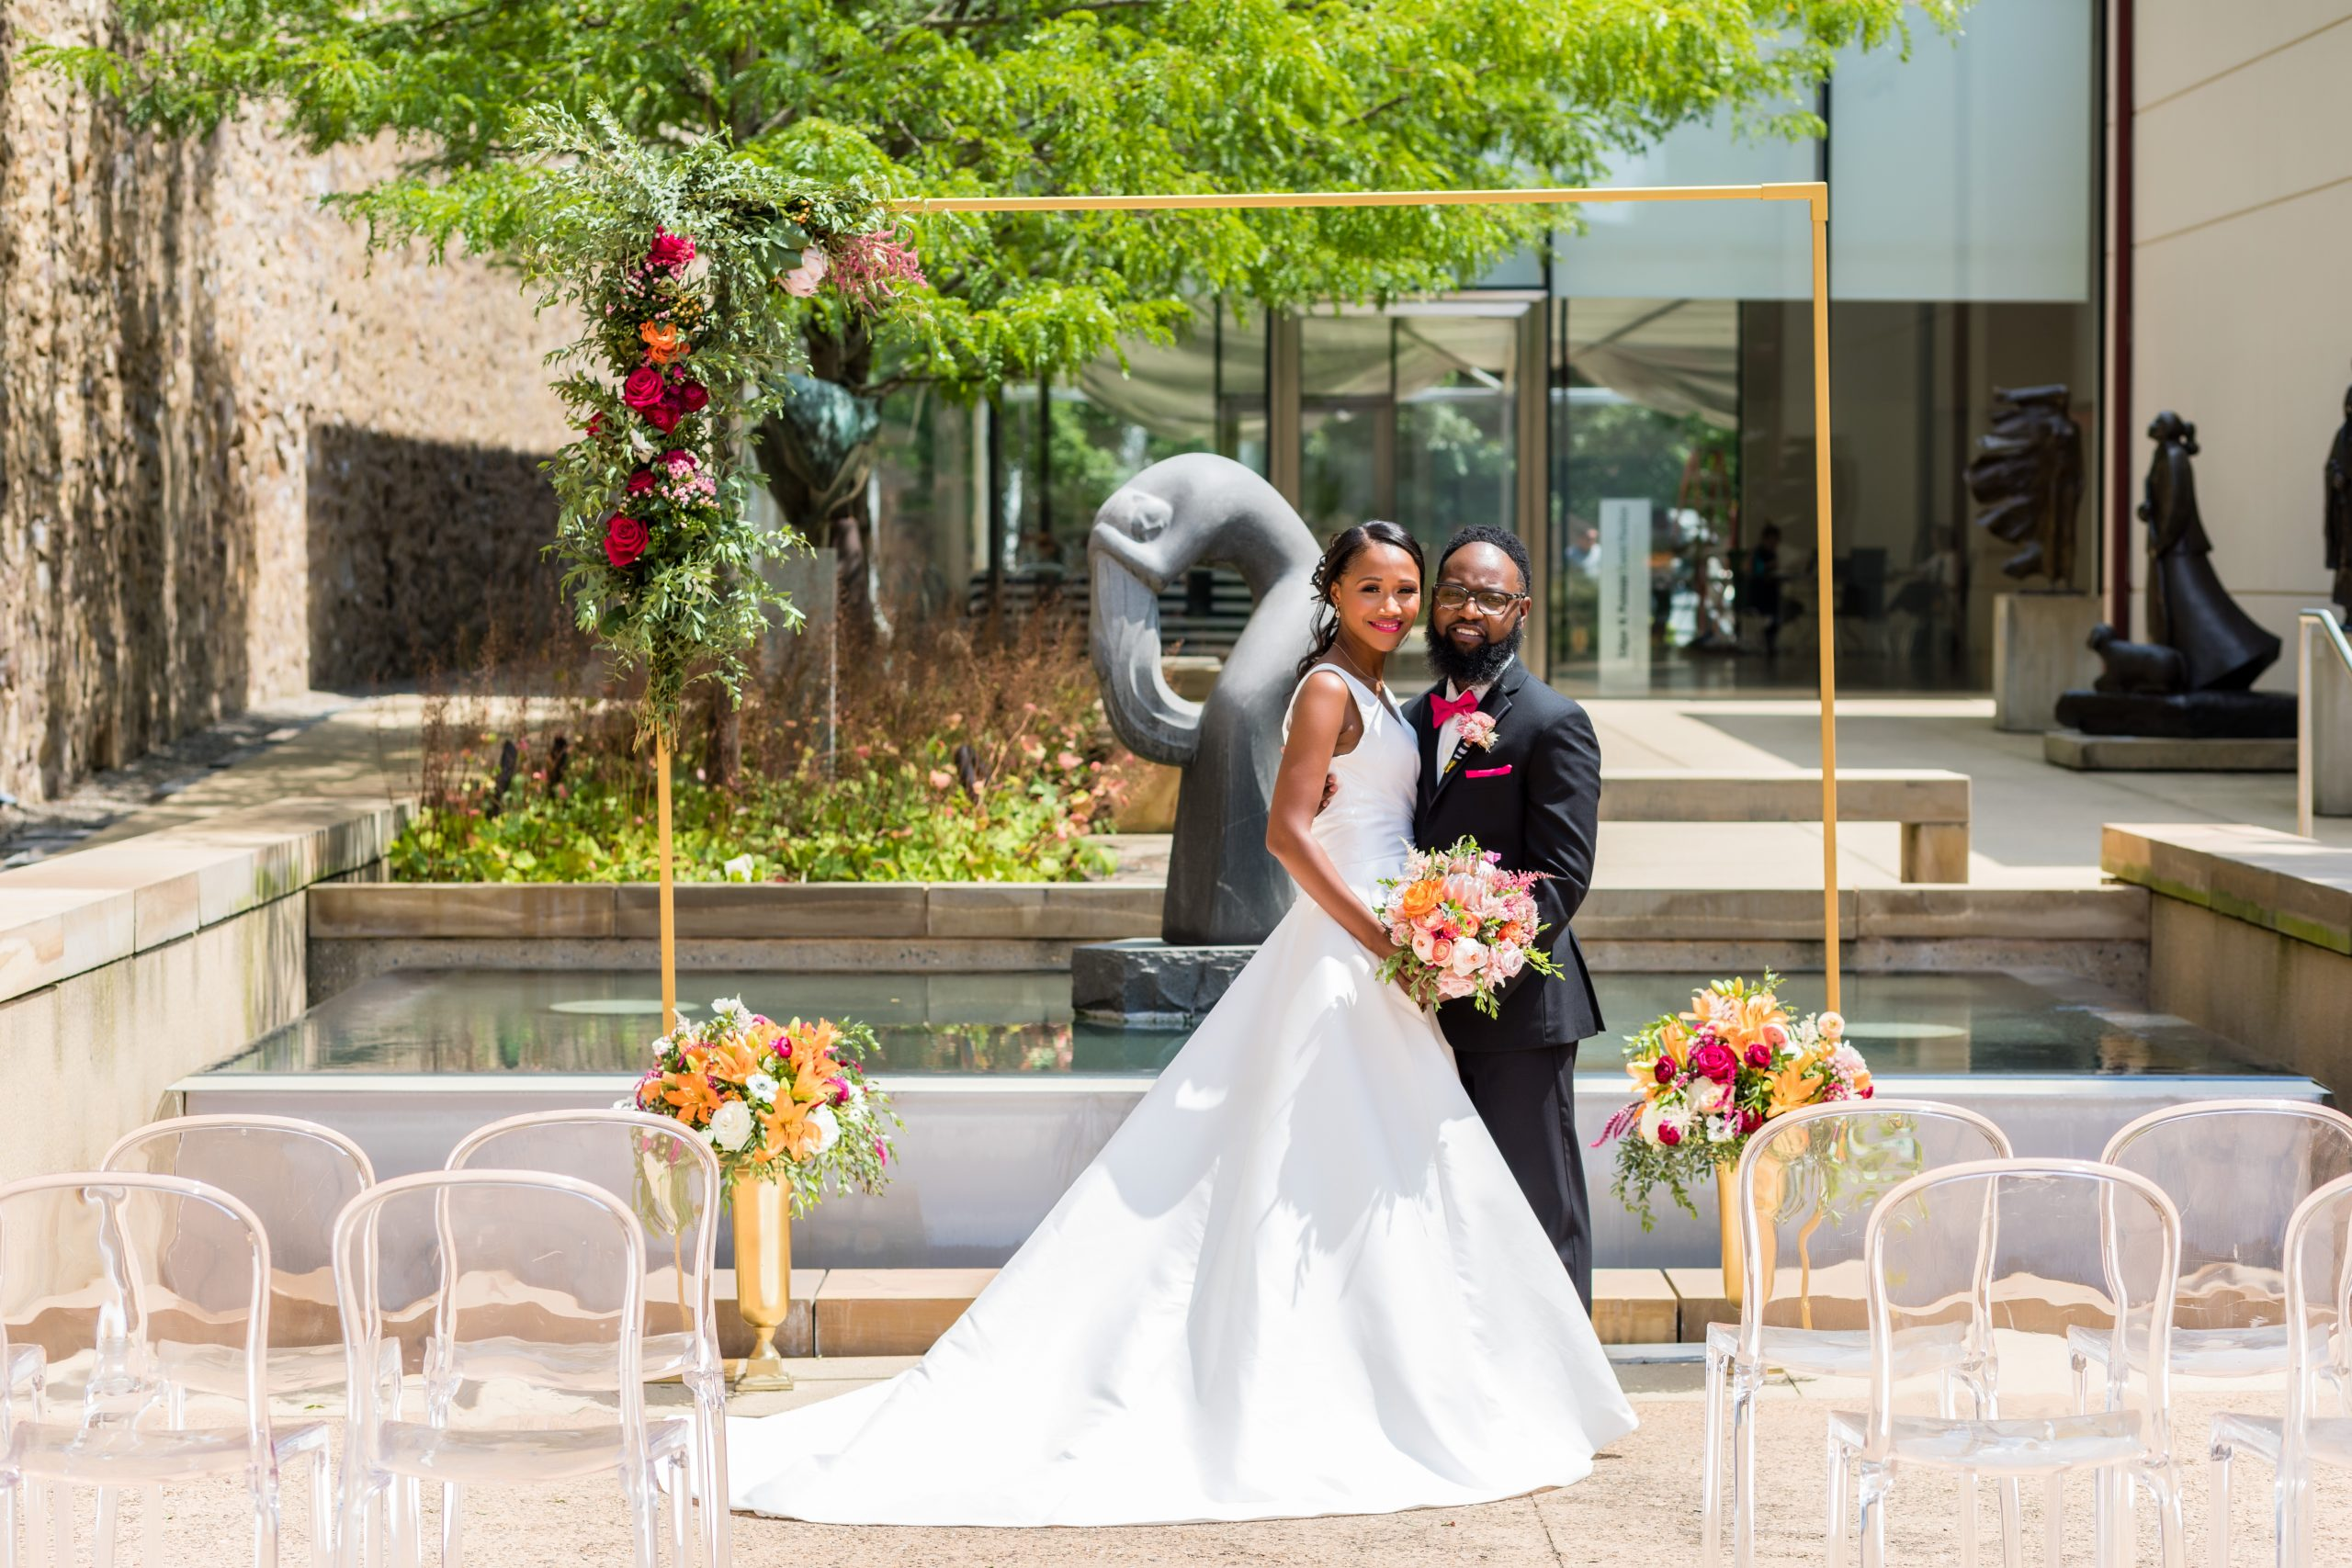 The blushing bride and groom enthralled in love at the Michener Museum styled urban contemporary shoot for Ashley Gerrity Photography this past Summer. Featured on Dream Weddings.